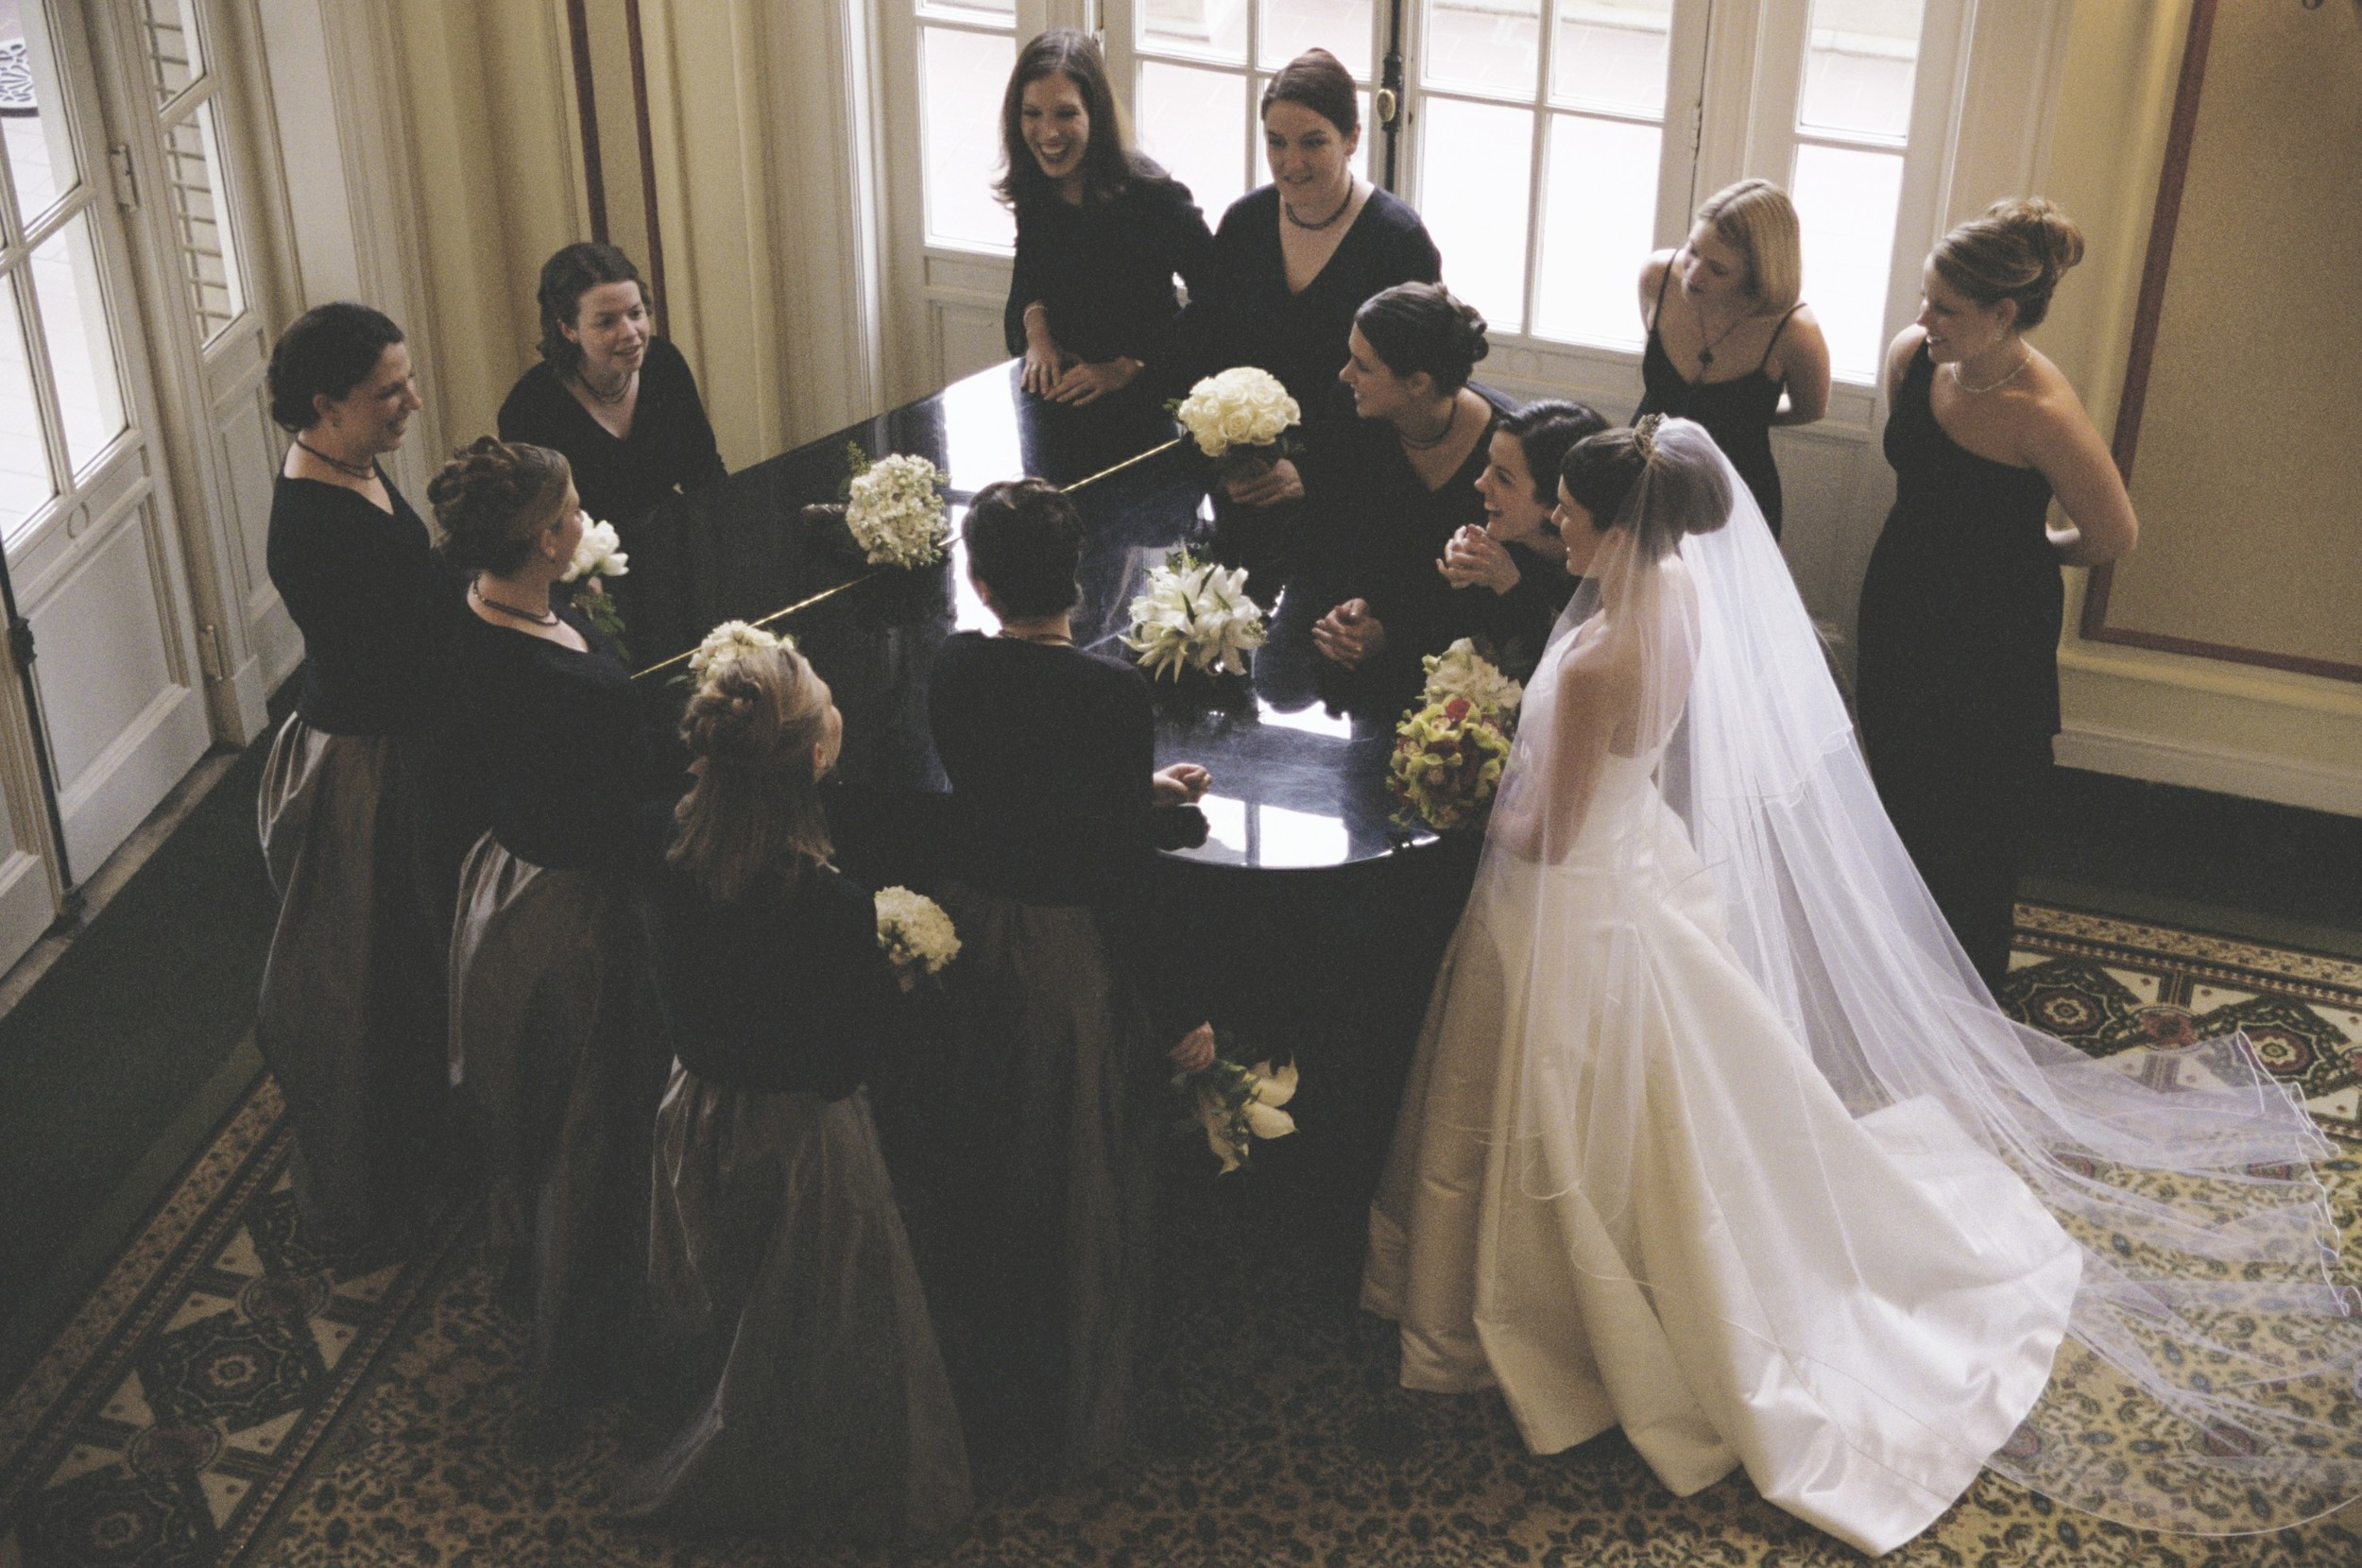 Not to be outdone by the groomsmen, the bridesmaids had the opportunity to reenact the opening sequence to Designing Women.